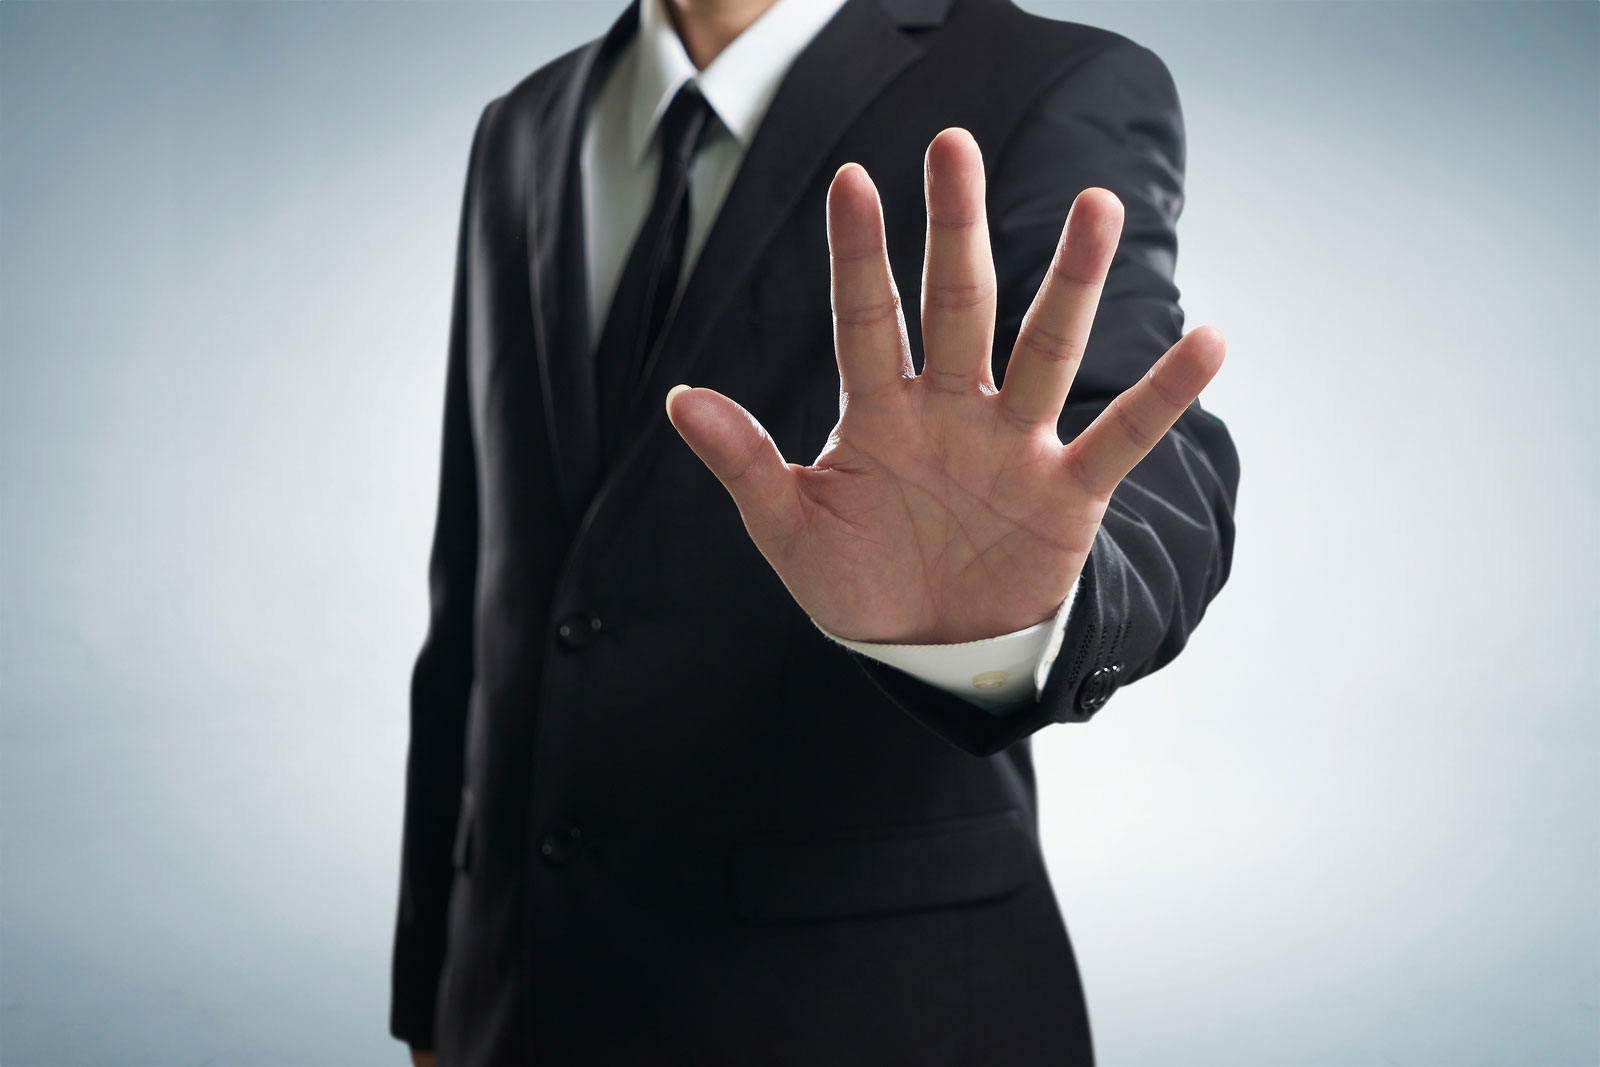 Businessman holding up hand showing no